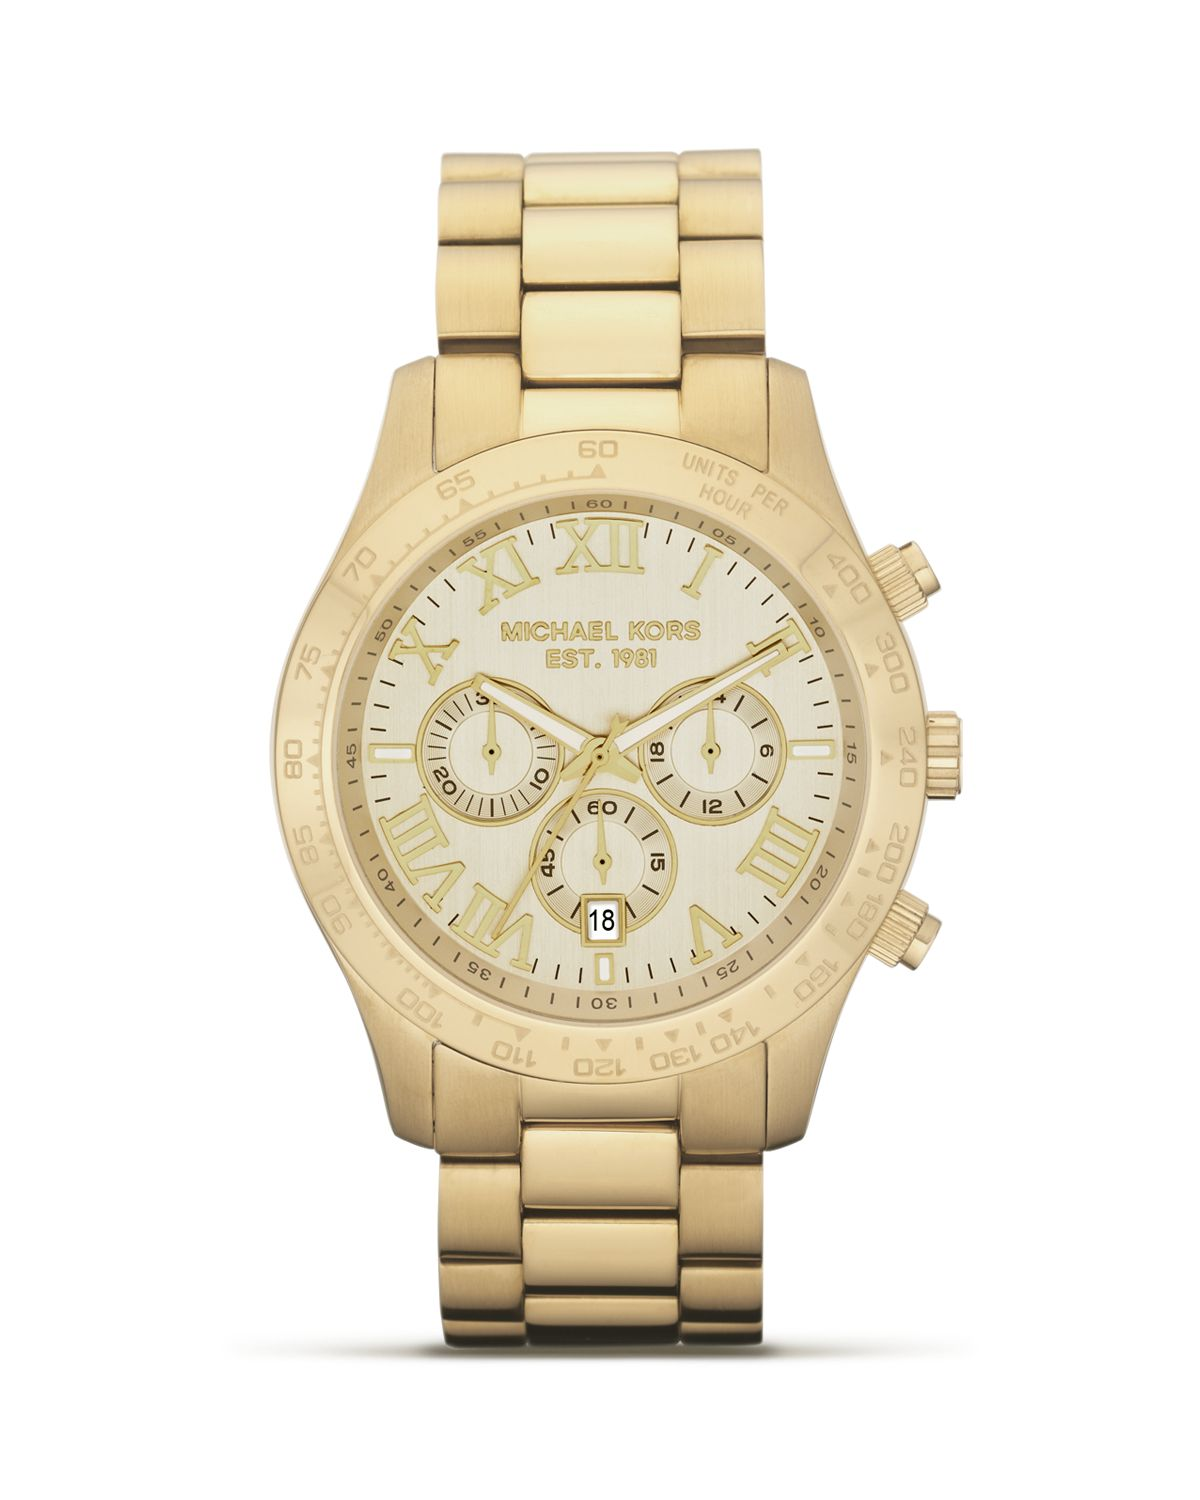 Michael Kors Men's Round Gold Watch, 45mm | Bloomingdale's